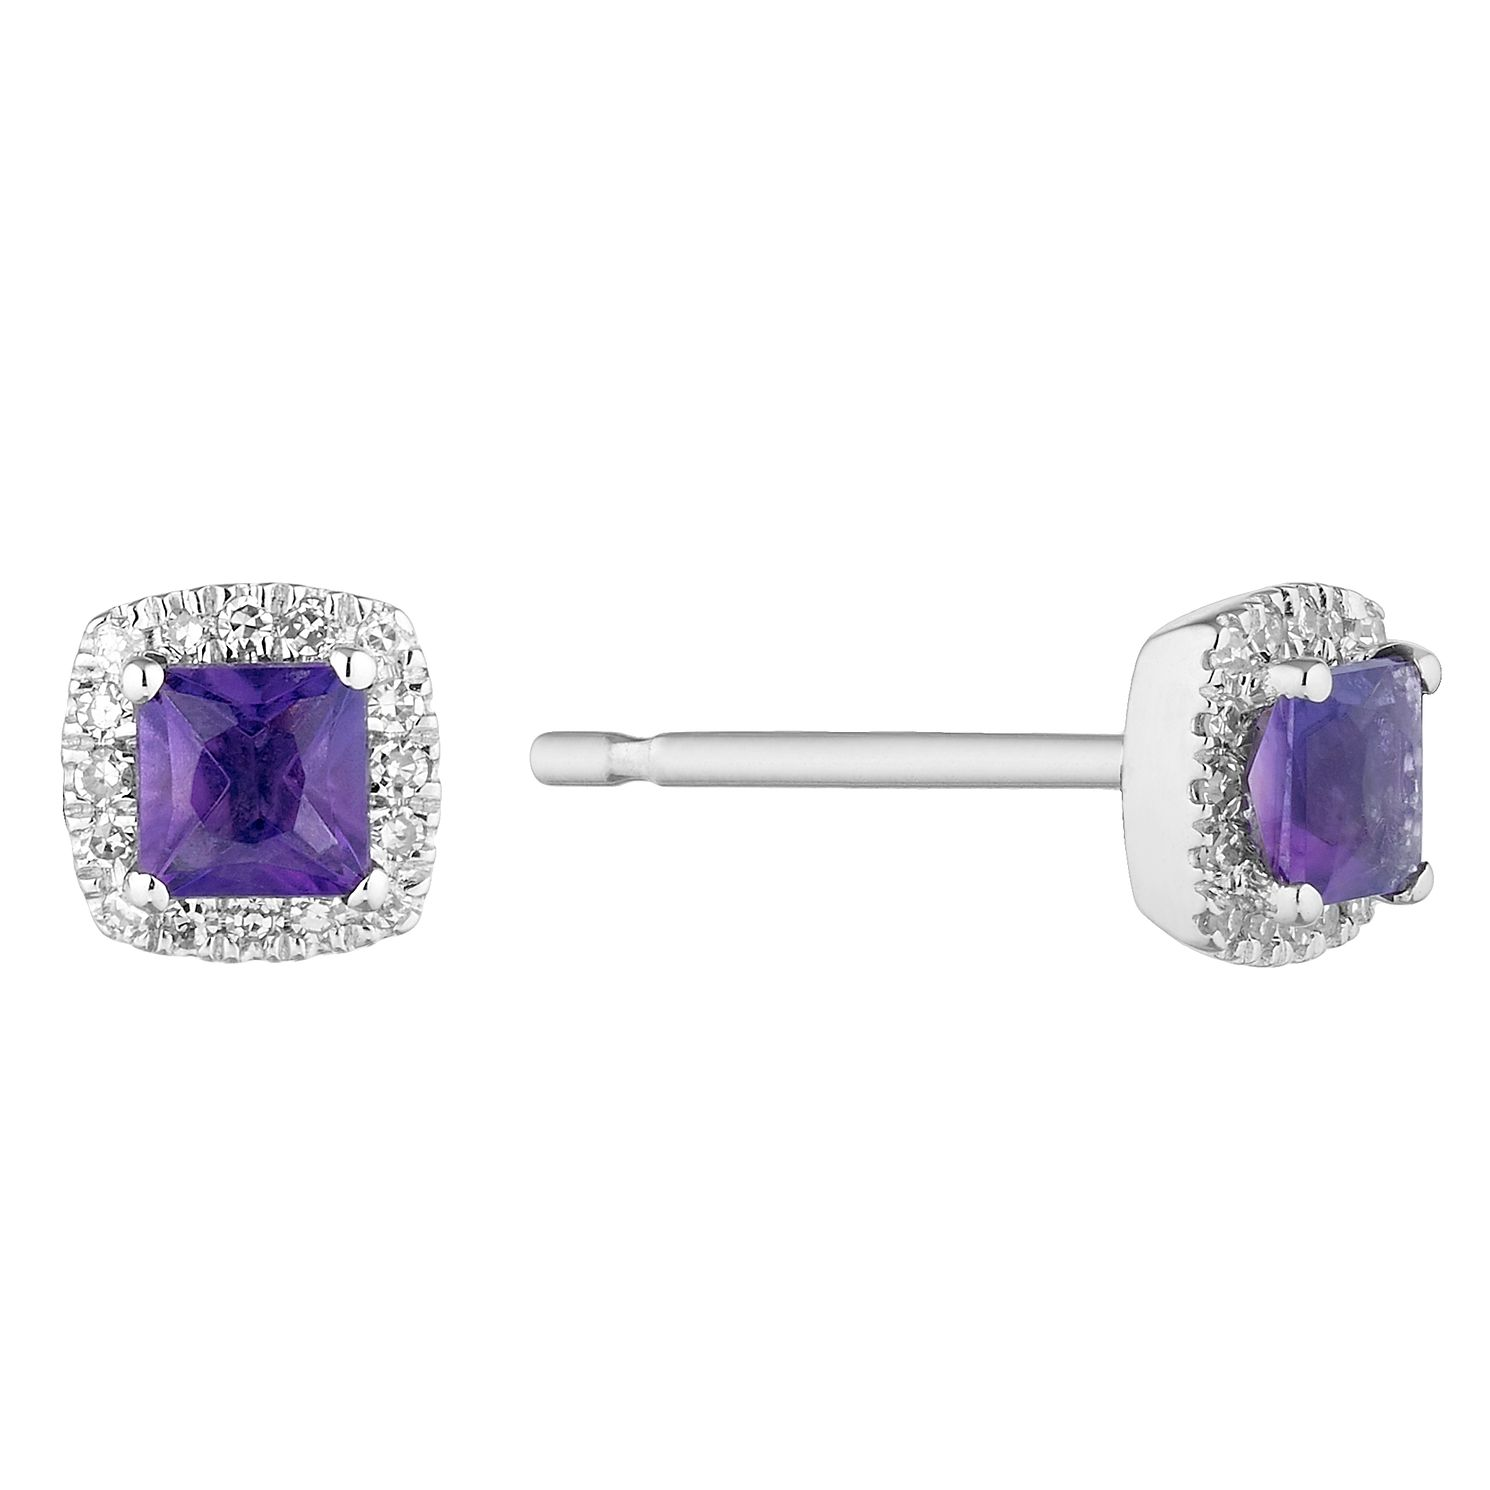 9ct White Gold Cushion Cut Amethyst & Diamond Halo Earrings - Product number 1098756